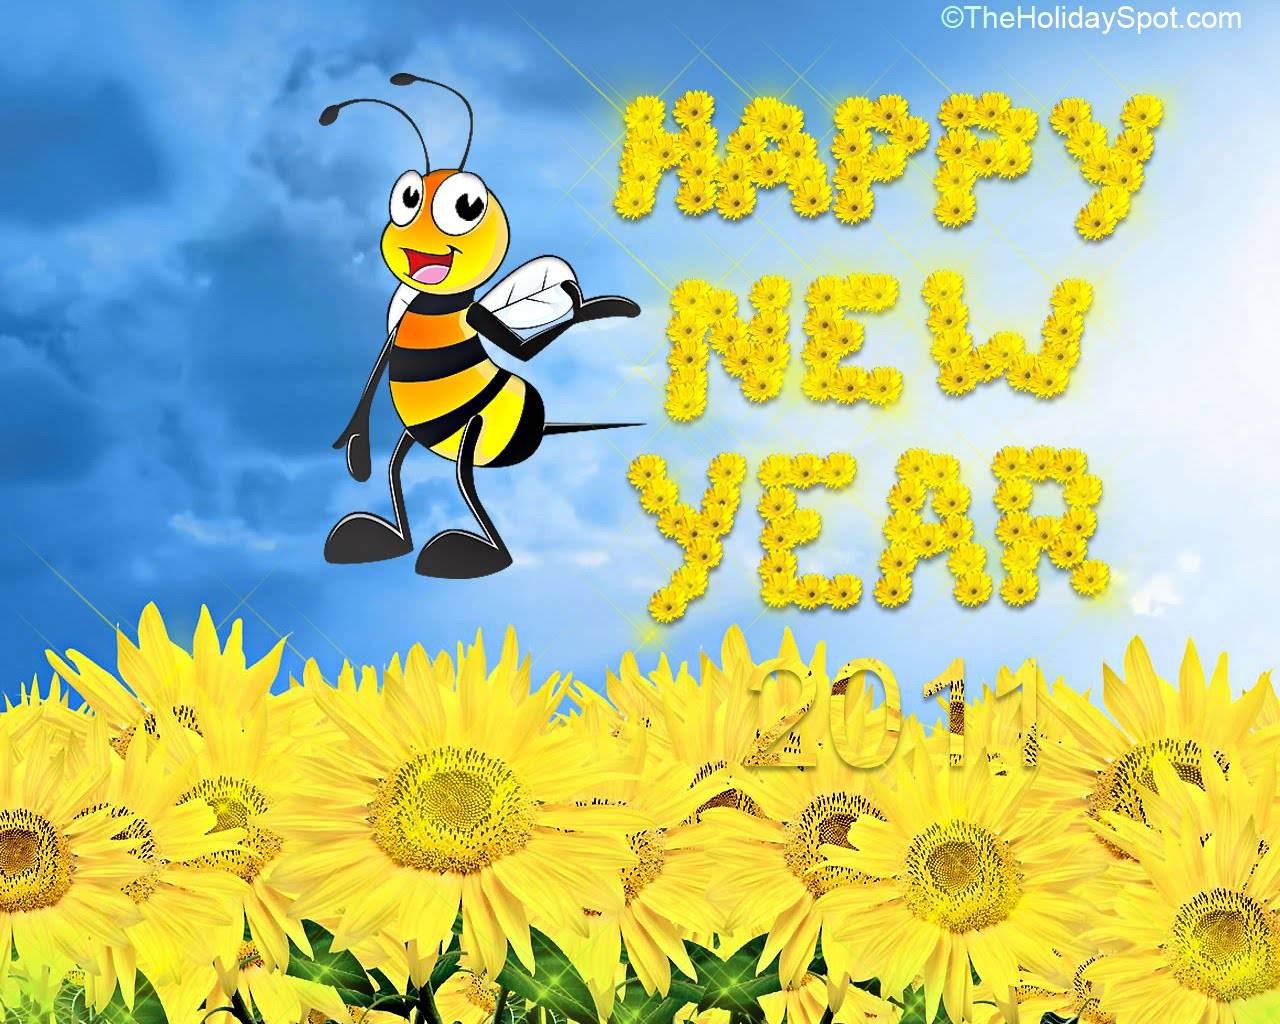 Happy new year 2017, wishes, video download,whatsapp video,song.